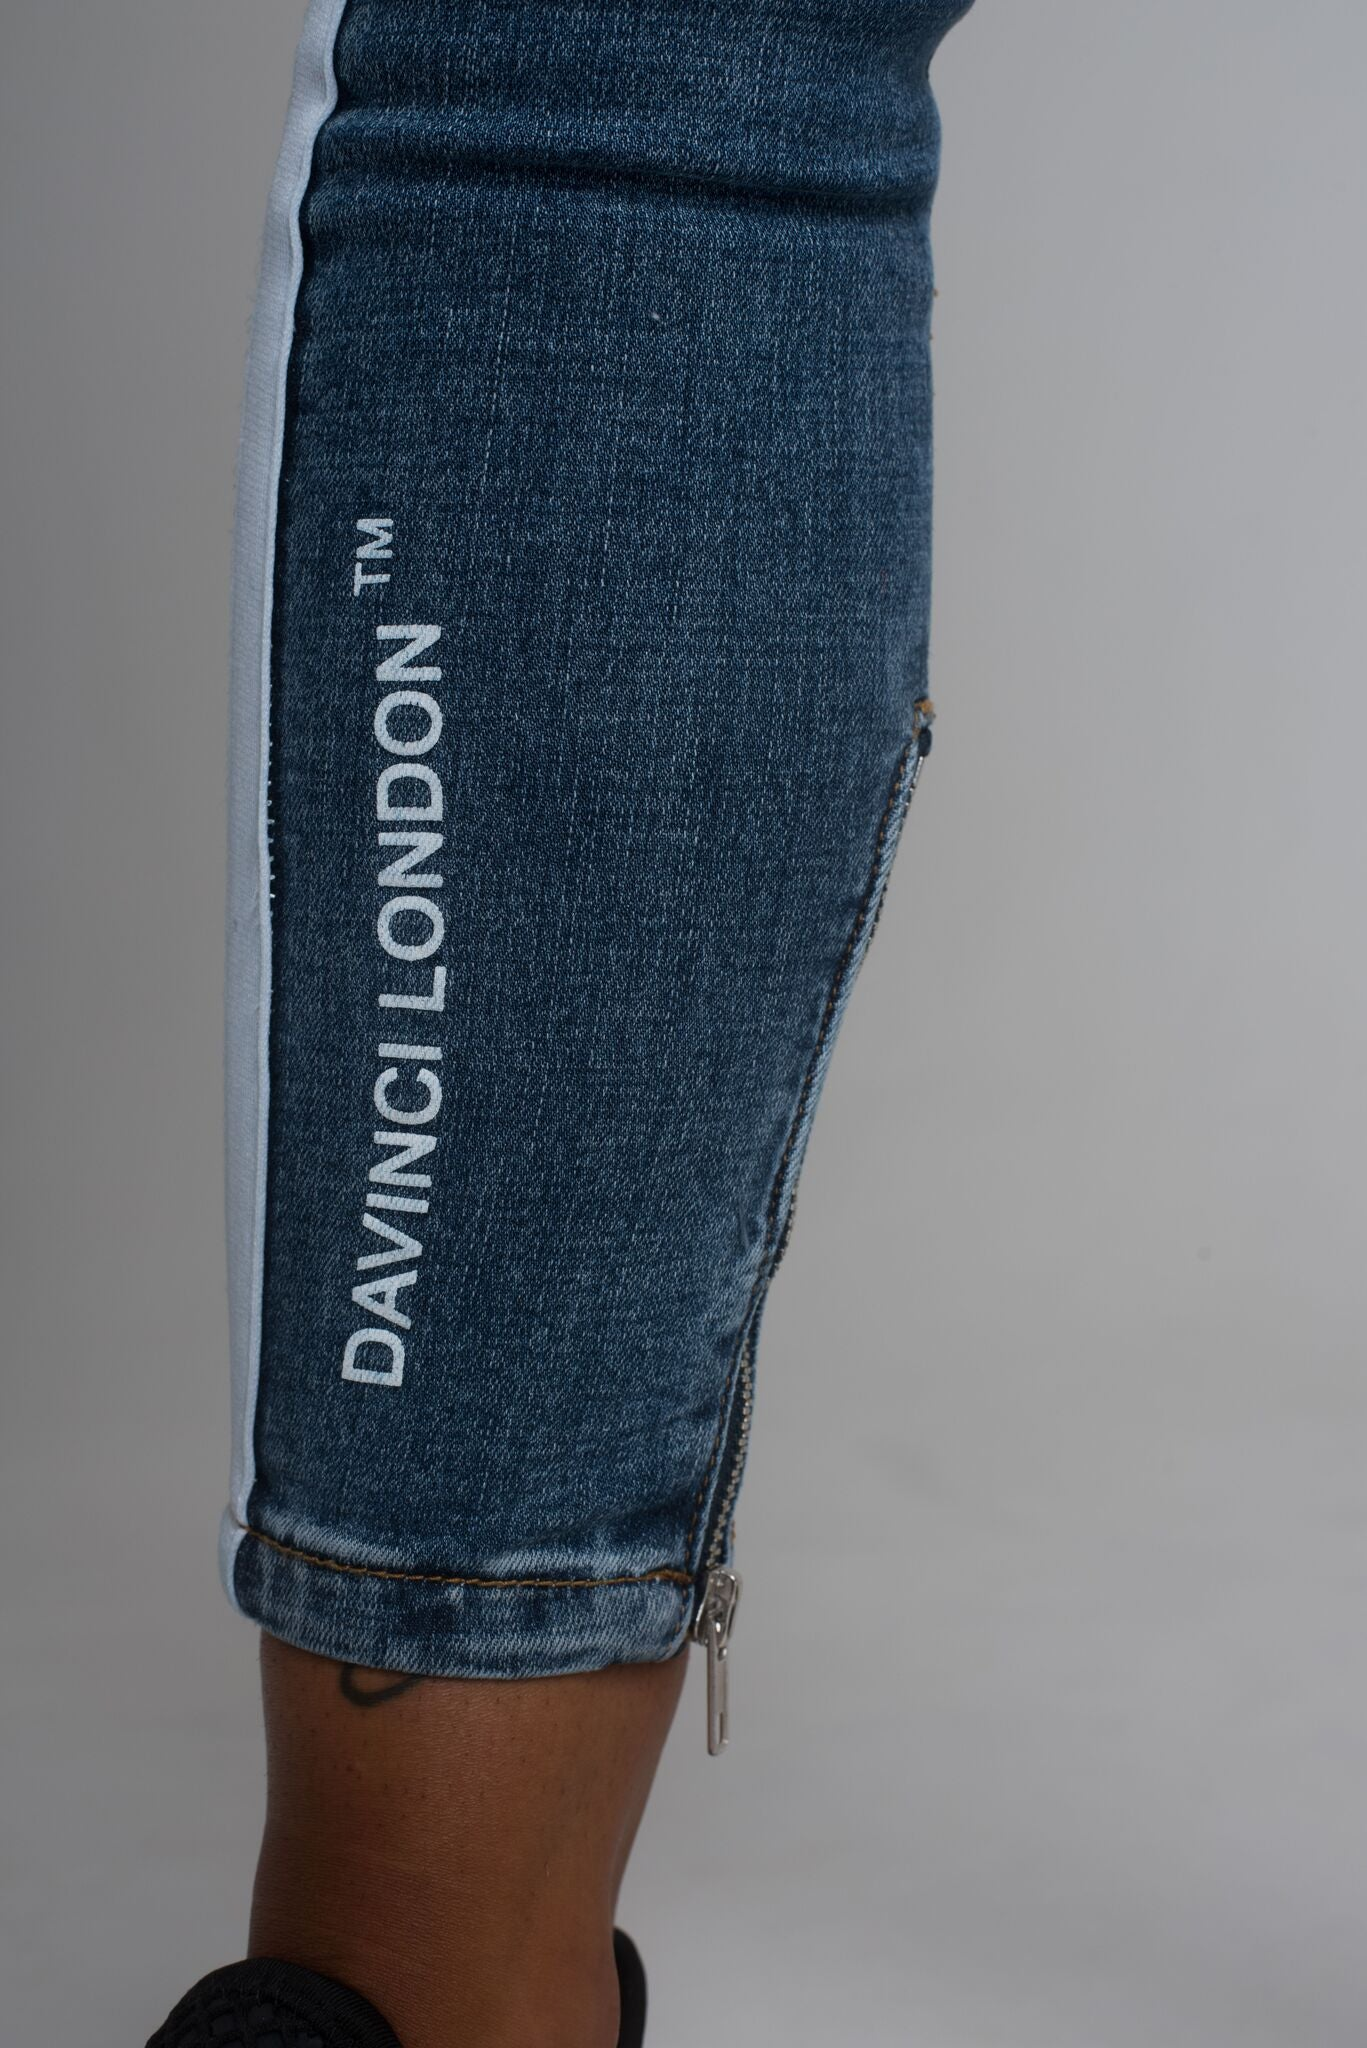 Davinci London Womens High Waisted Blue with White Tape Detail Skinny Jeans